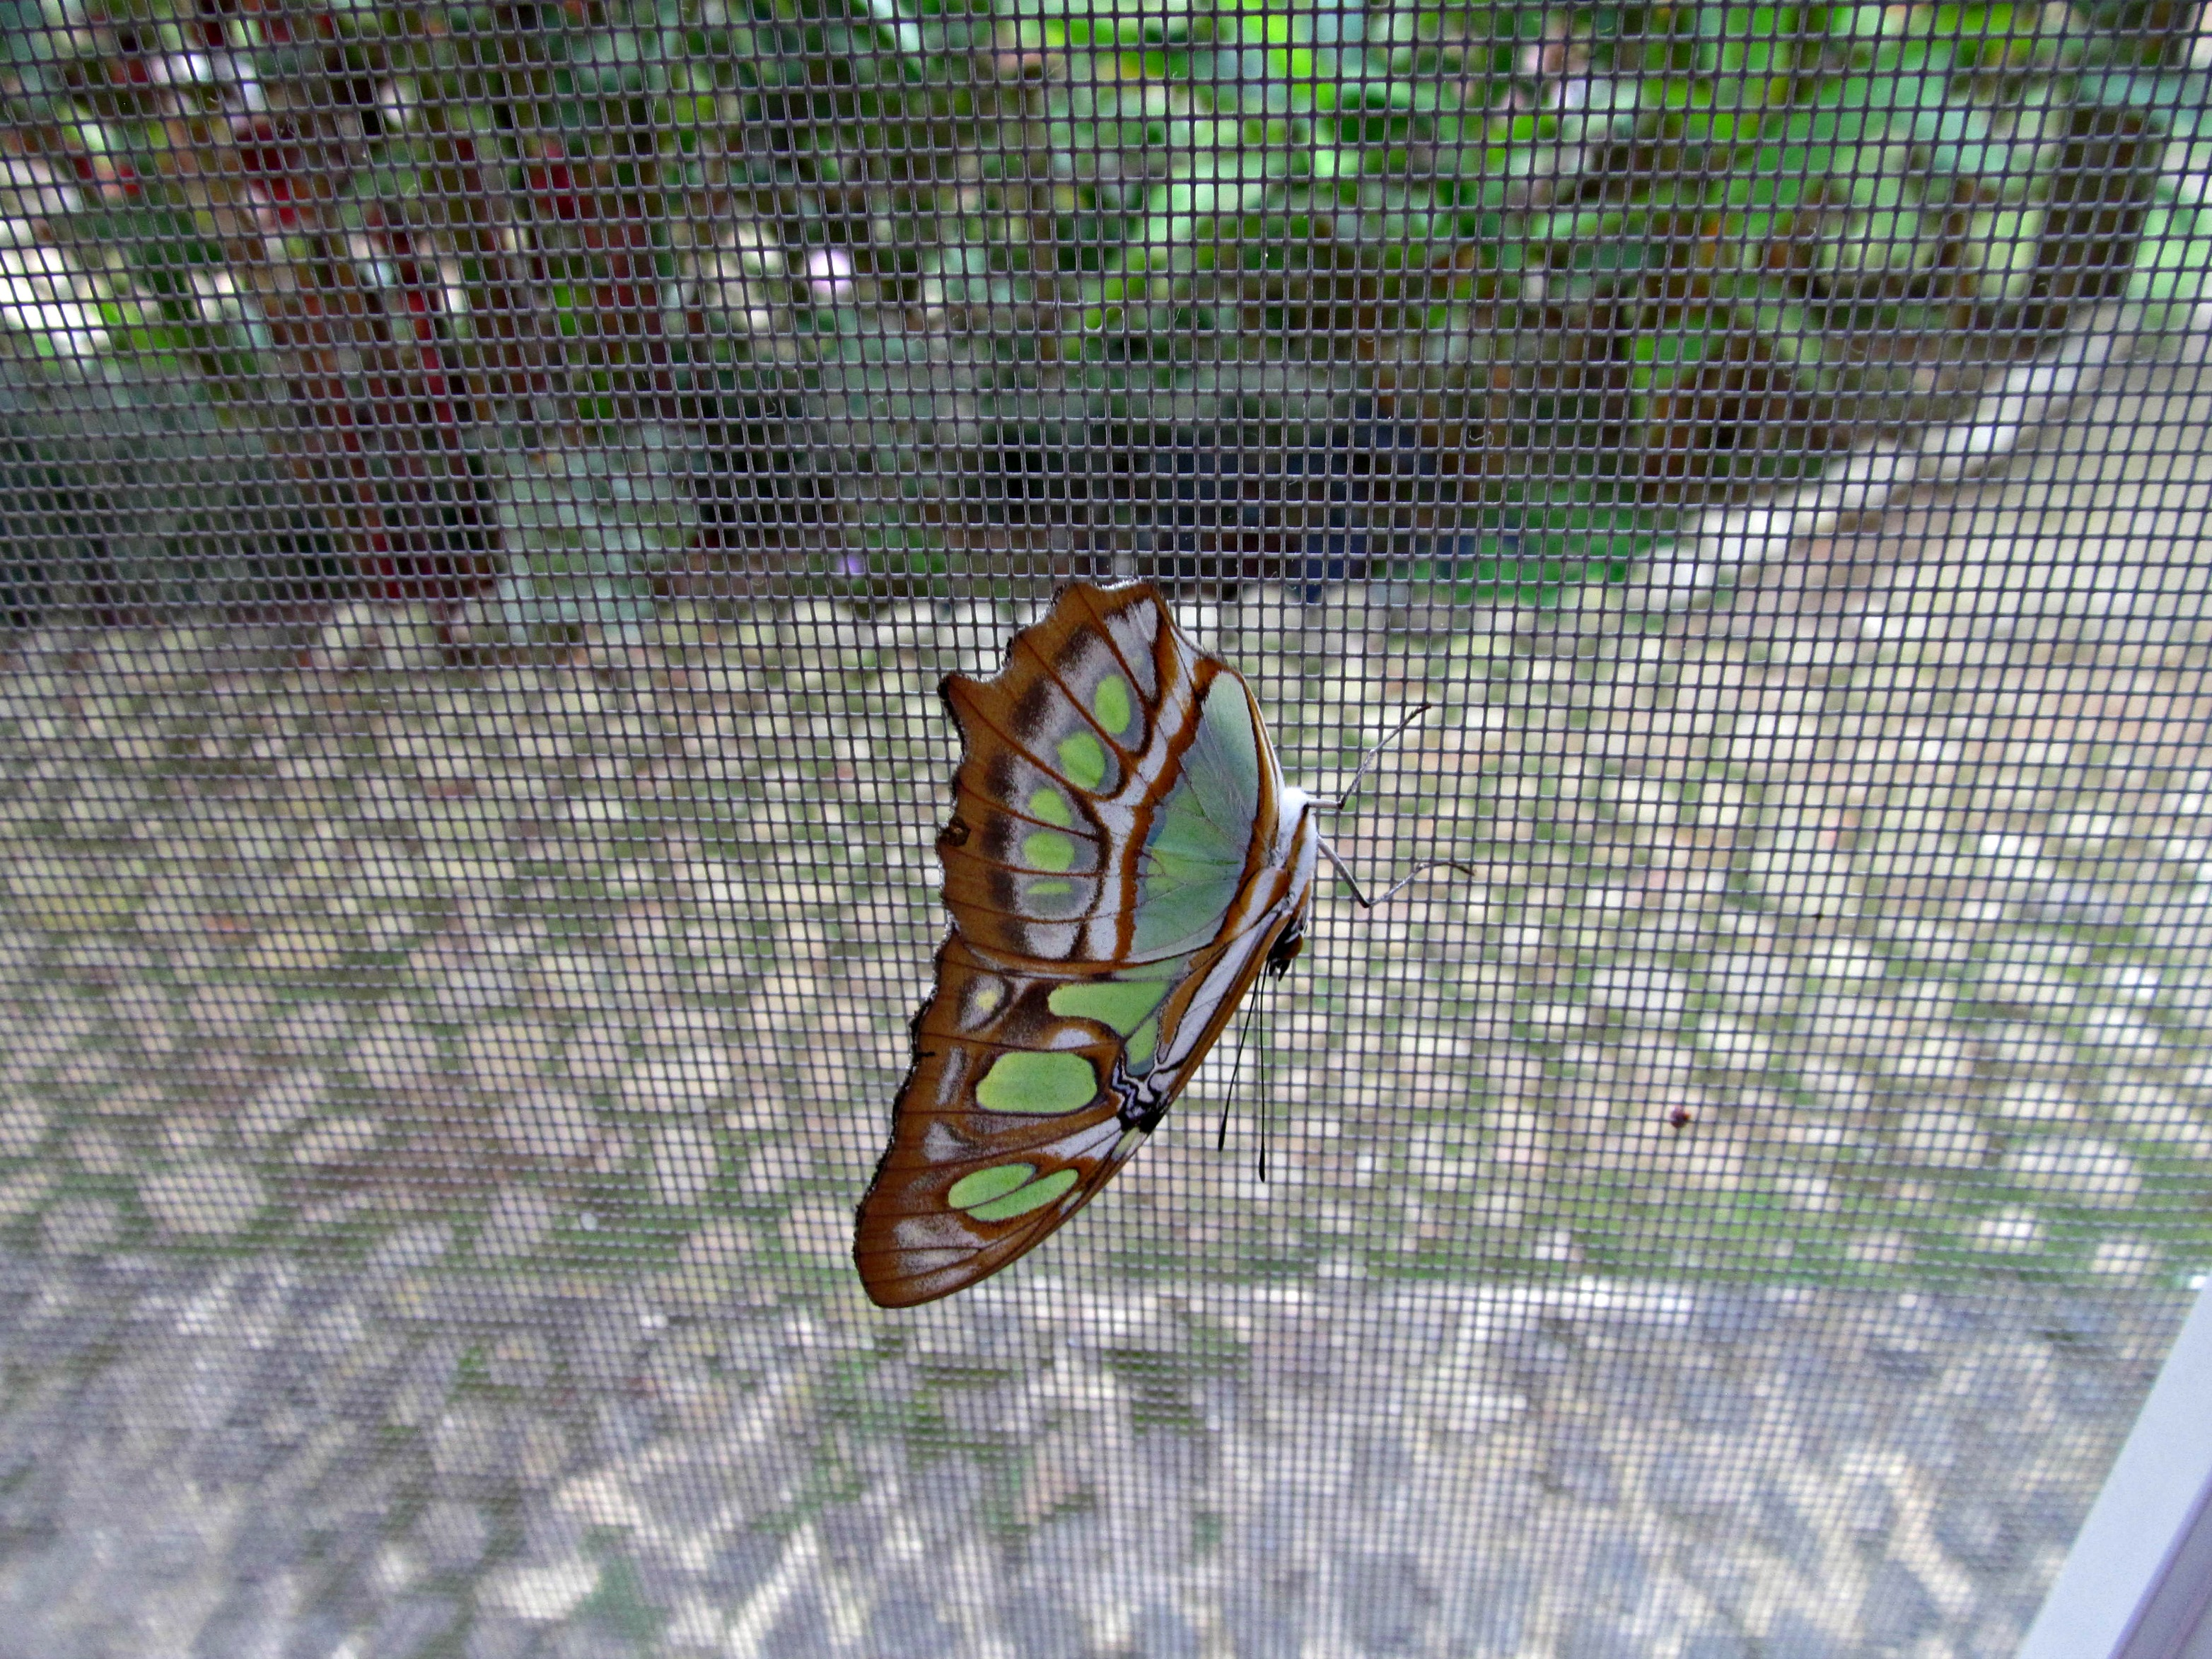 Butterfly video and photos 010